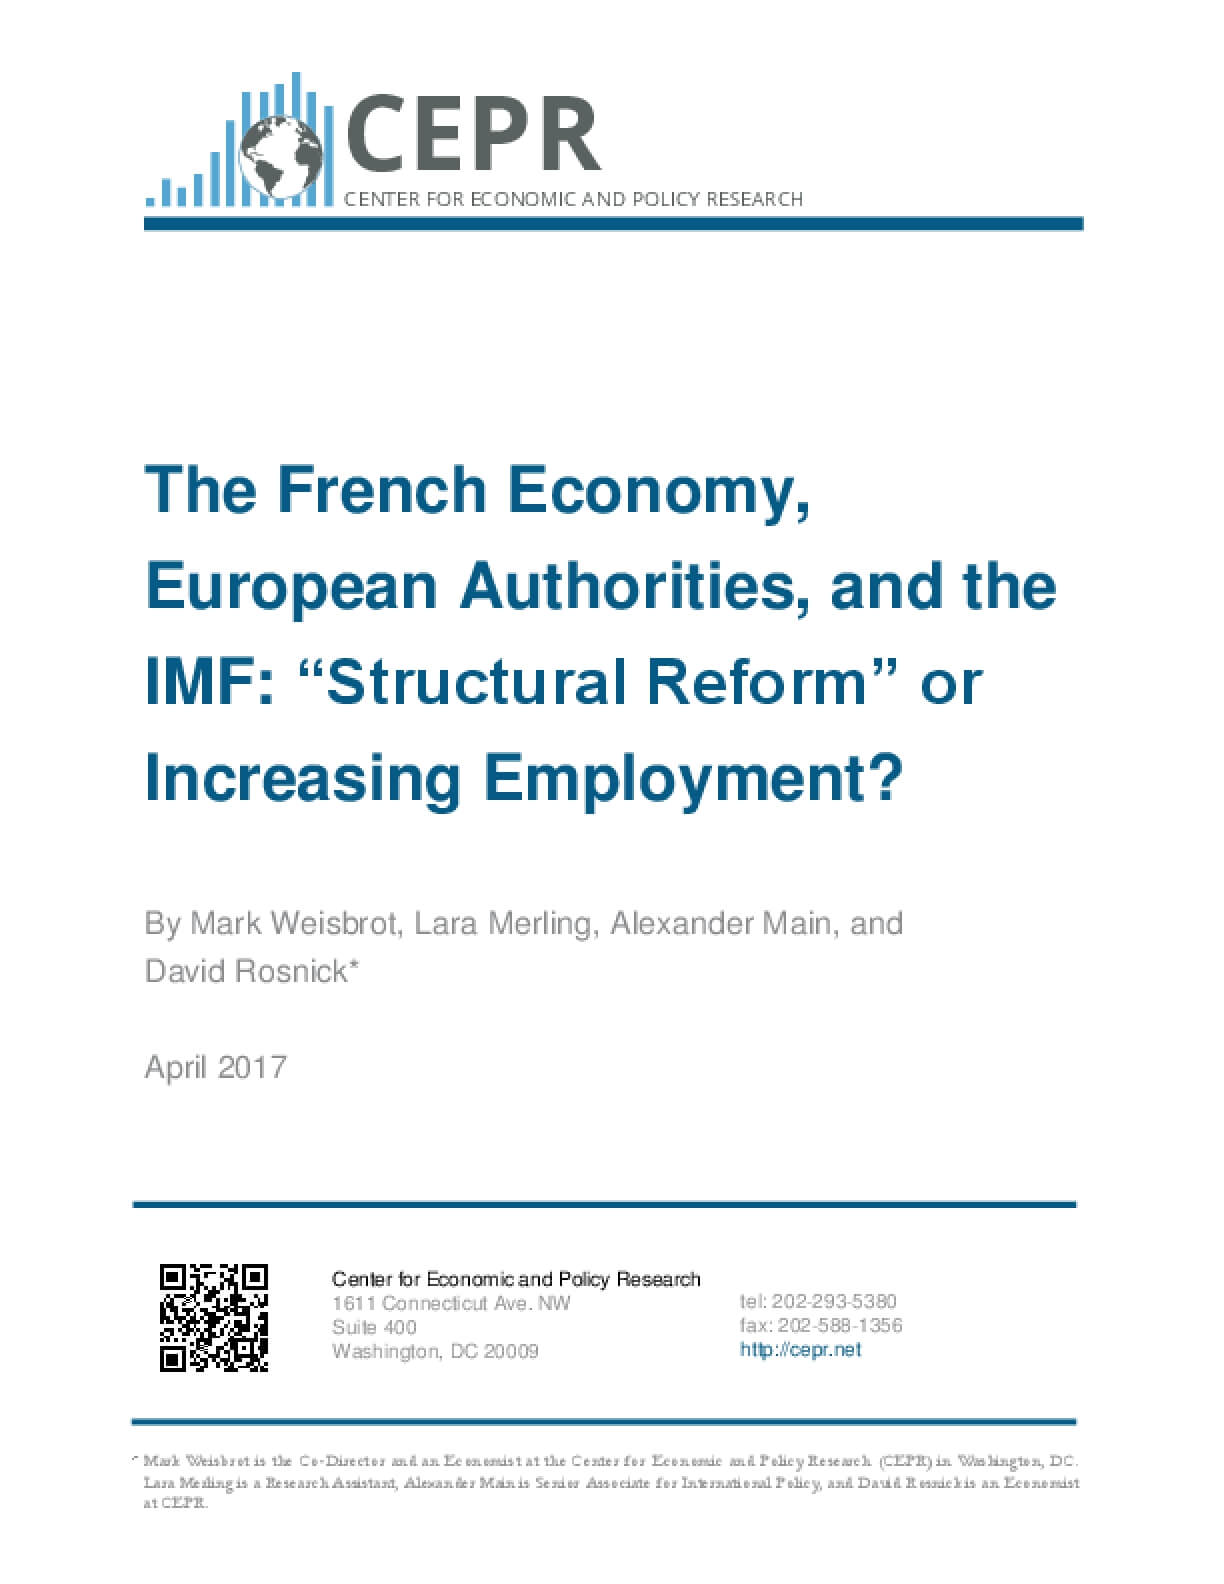 """The French Economy, European Authorities, and the IMF: """"Structural Reform"""" or Increasing Employment?"""